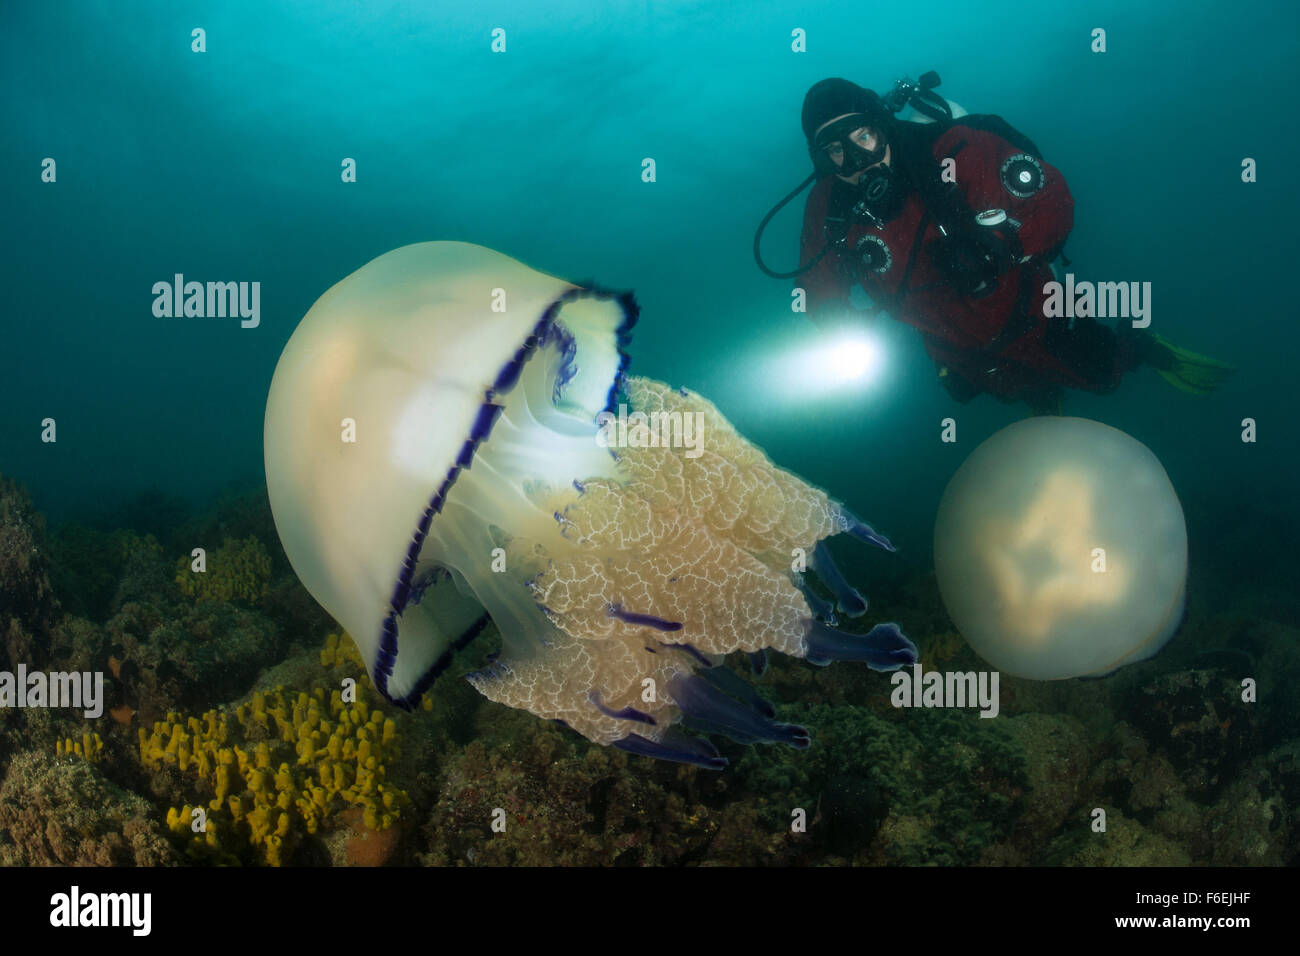 Rhizostome Jellyfish and Scuba Diver, Rhizostoma pulmo, Piran, Slovenia - Stock Image